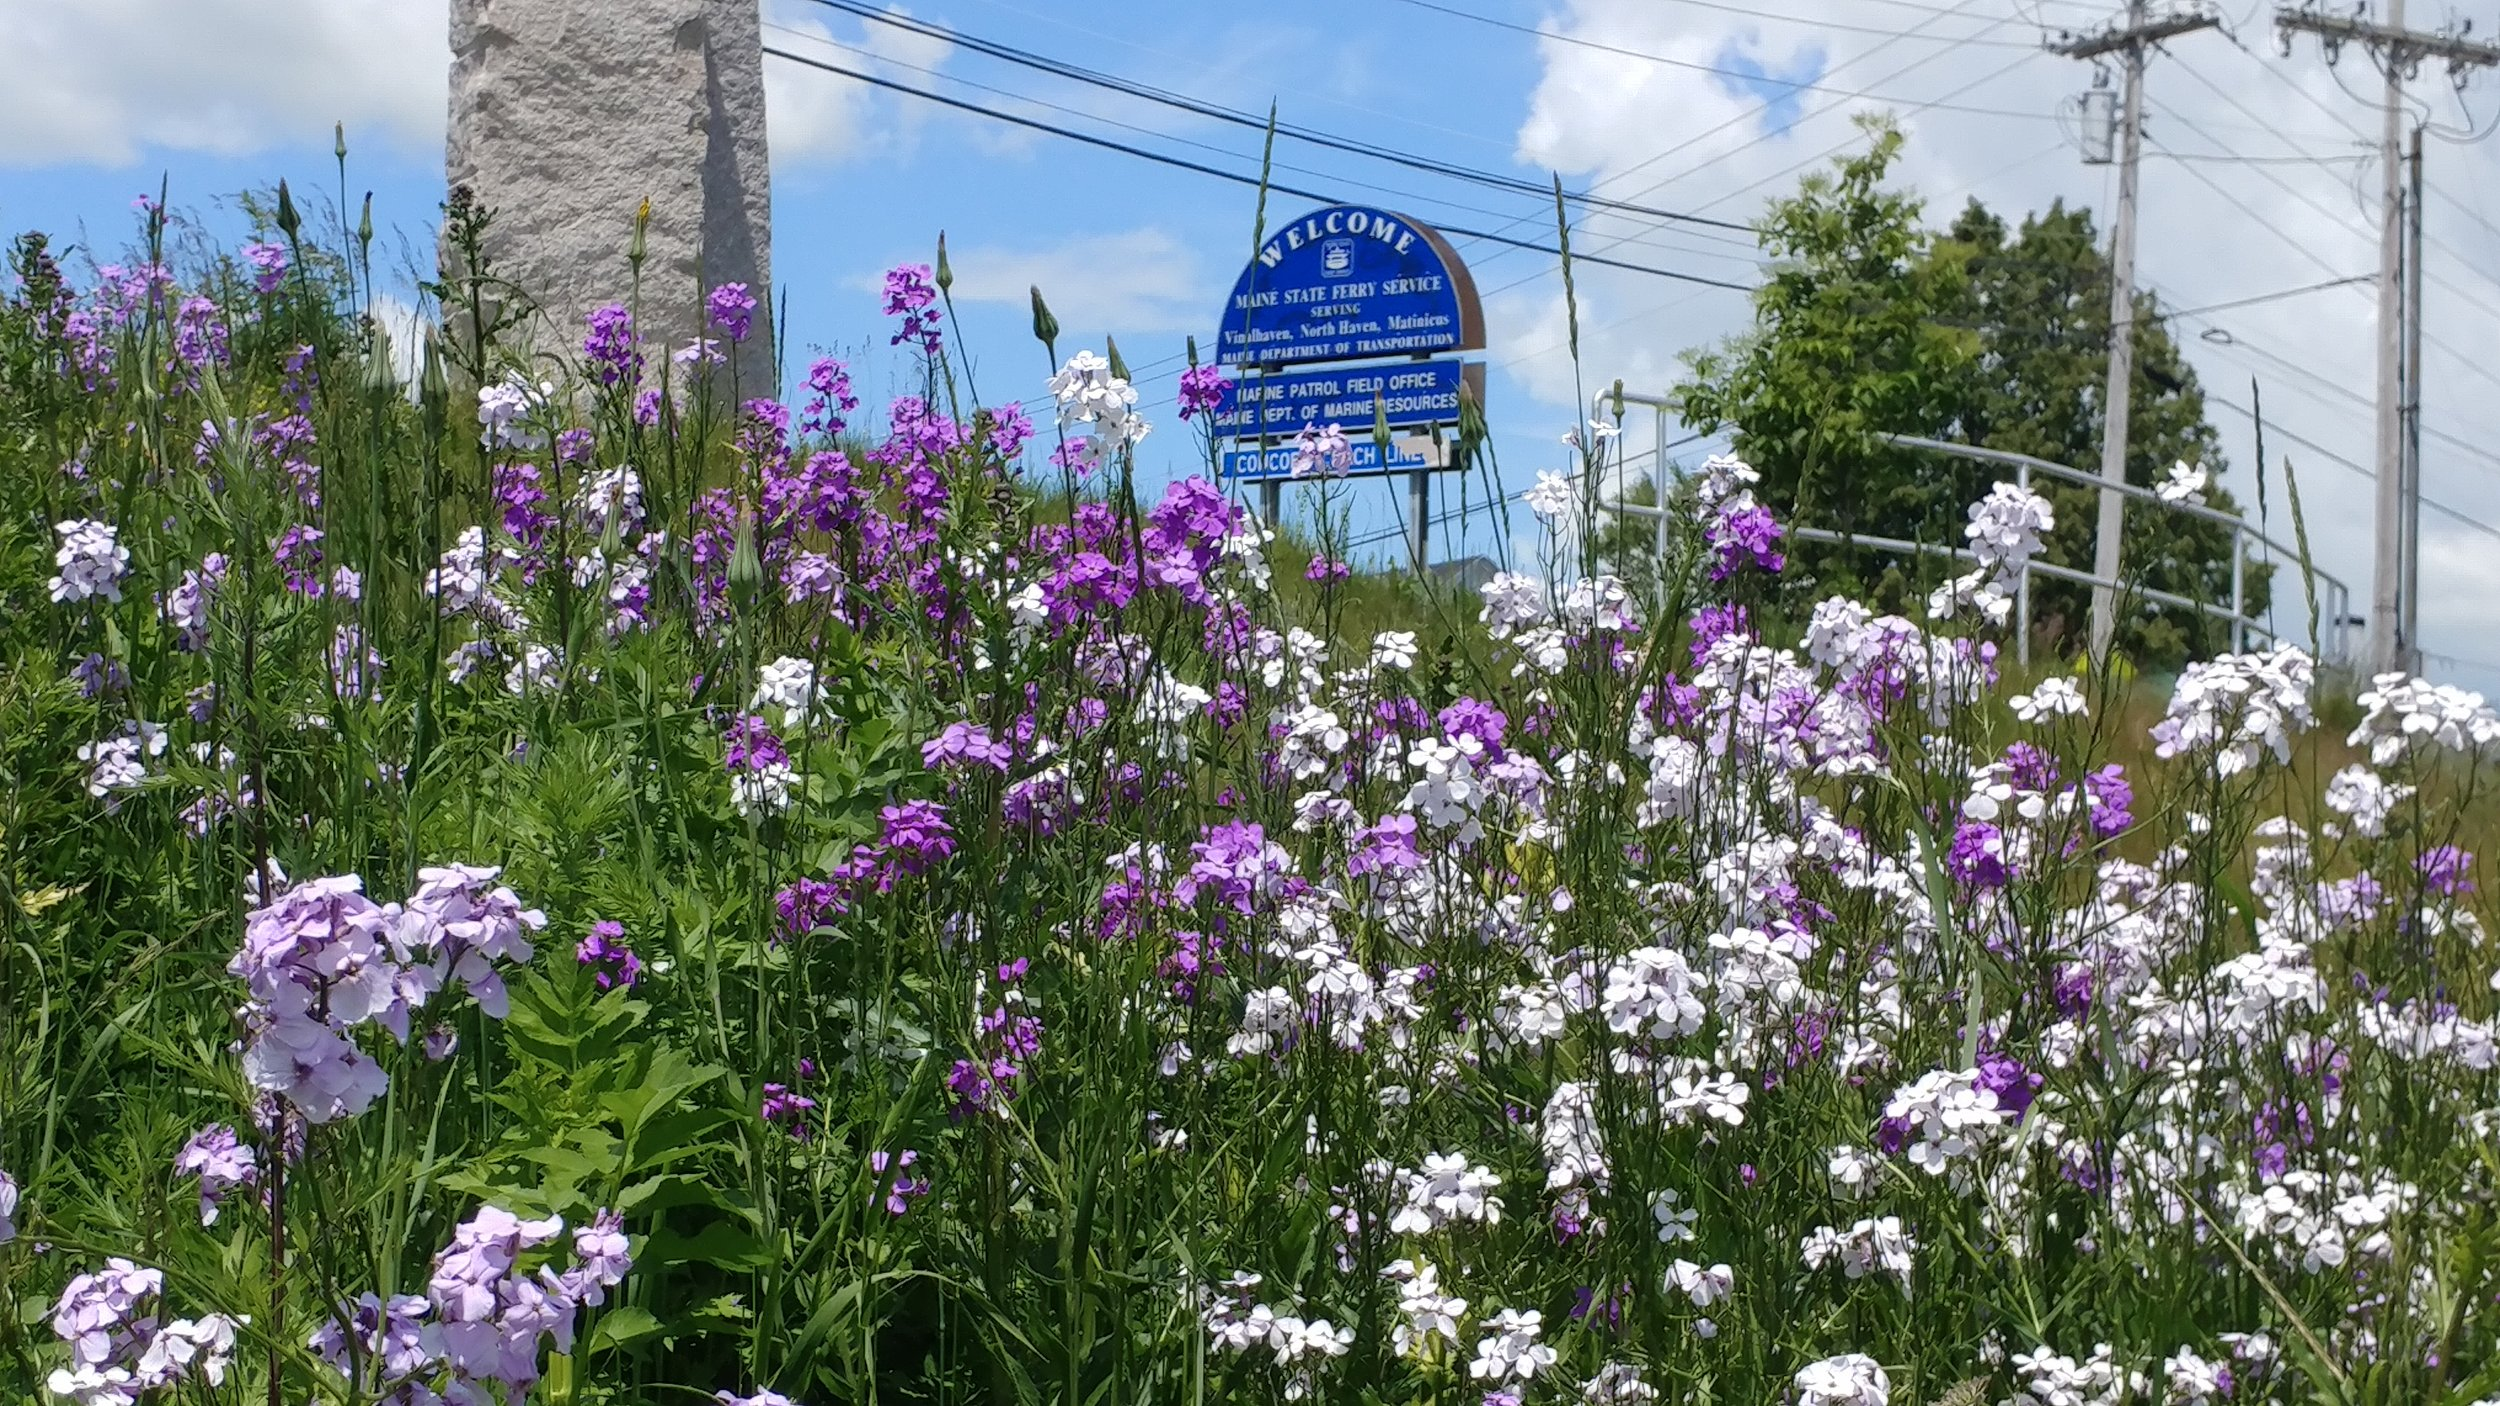 Fields of these beautiful purple and white flowers grow wild right outside the Rockland Ferry Terminal. Inns Along the Coast photo.